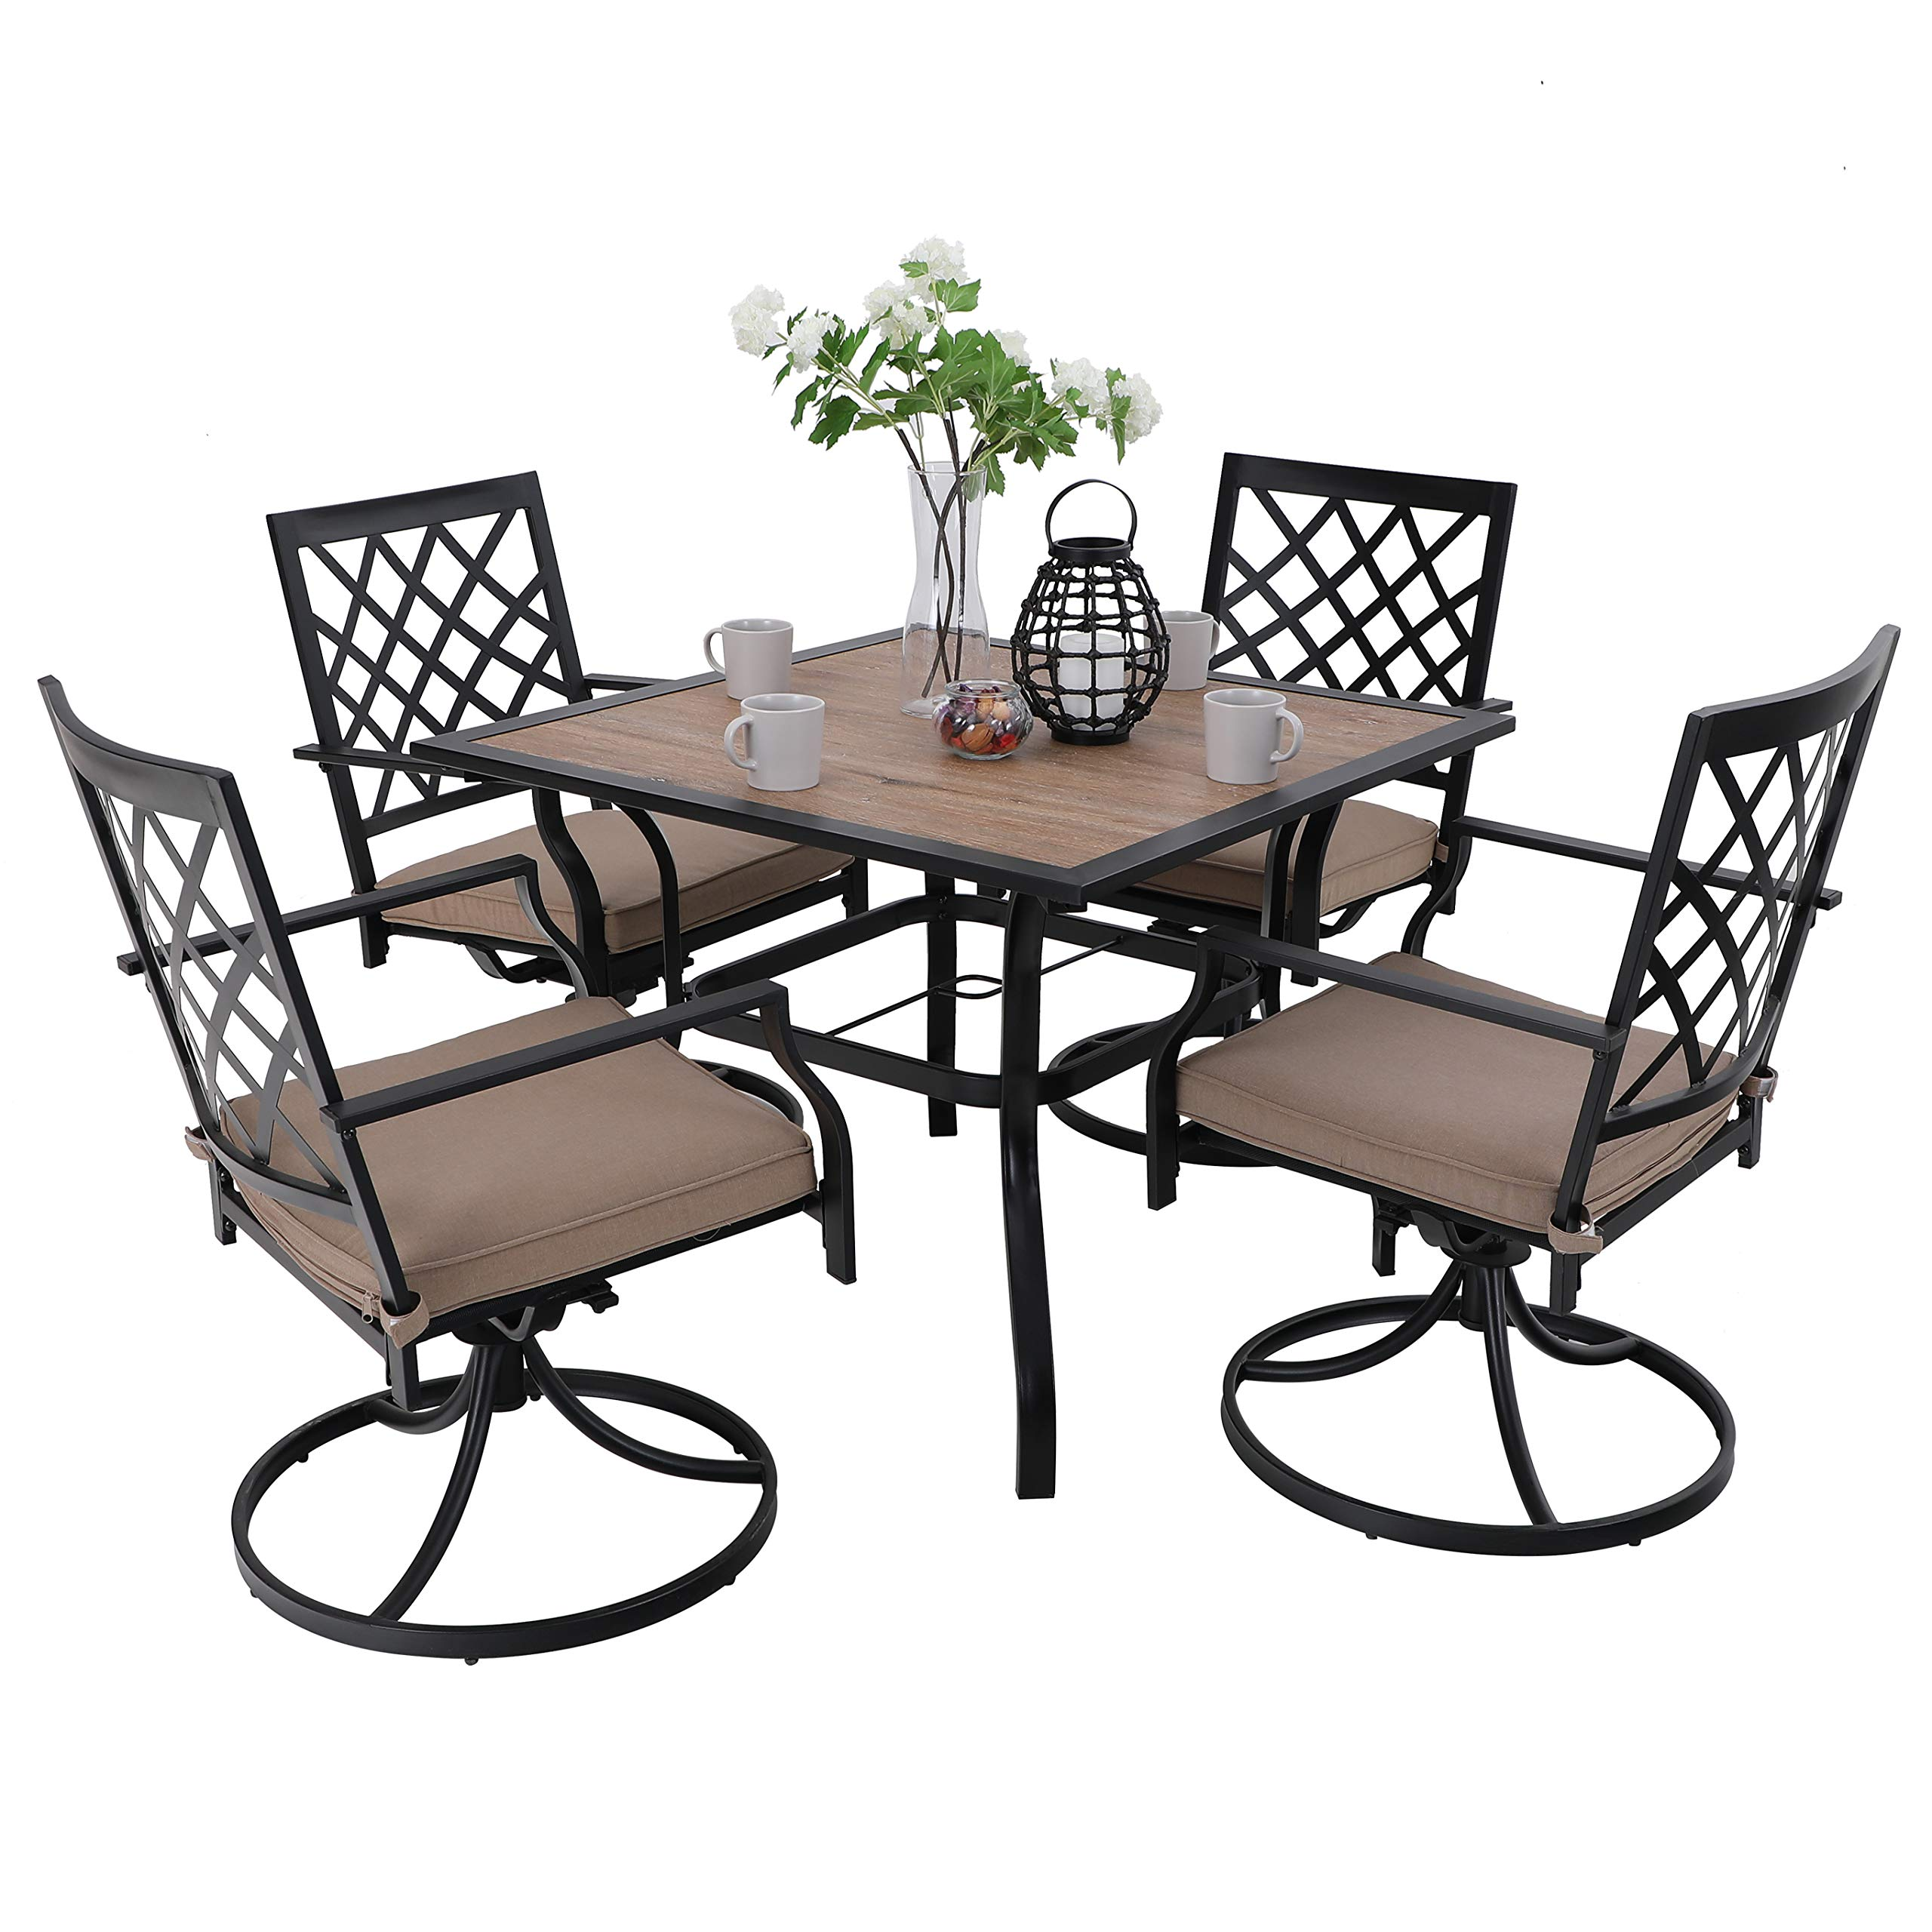 Picture of: Phi Villa 5 Piece Outdoor Patio Bistro Swivel Chairs And Wood Like Square Dining Table Furniture Set